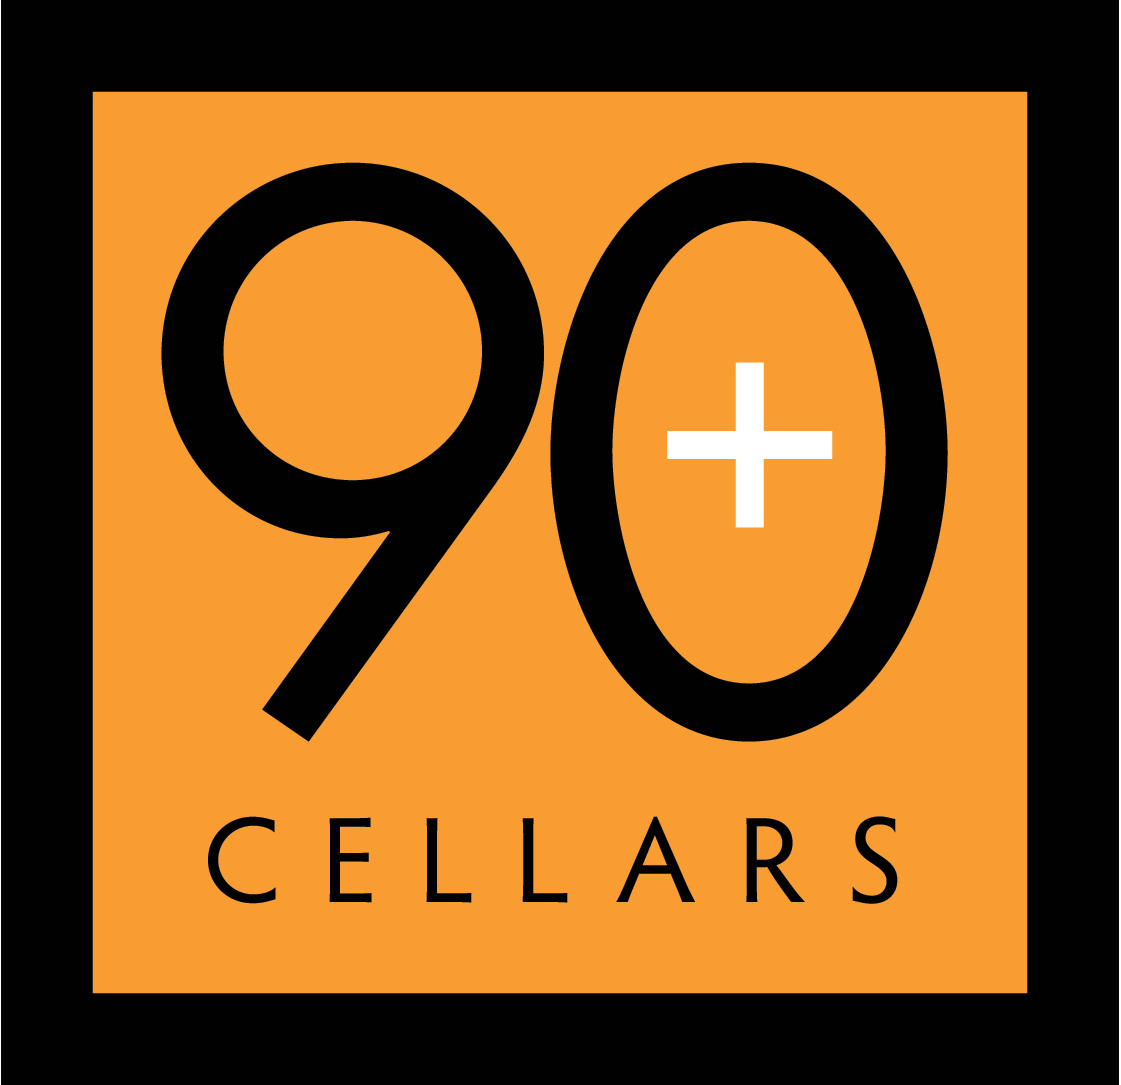 90+ Cellars Wine Boston